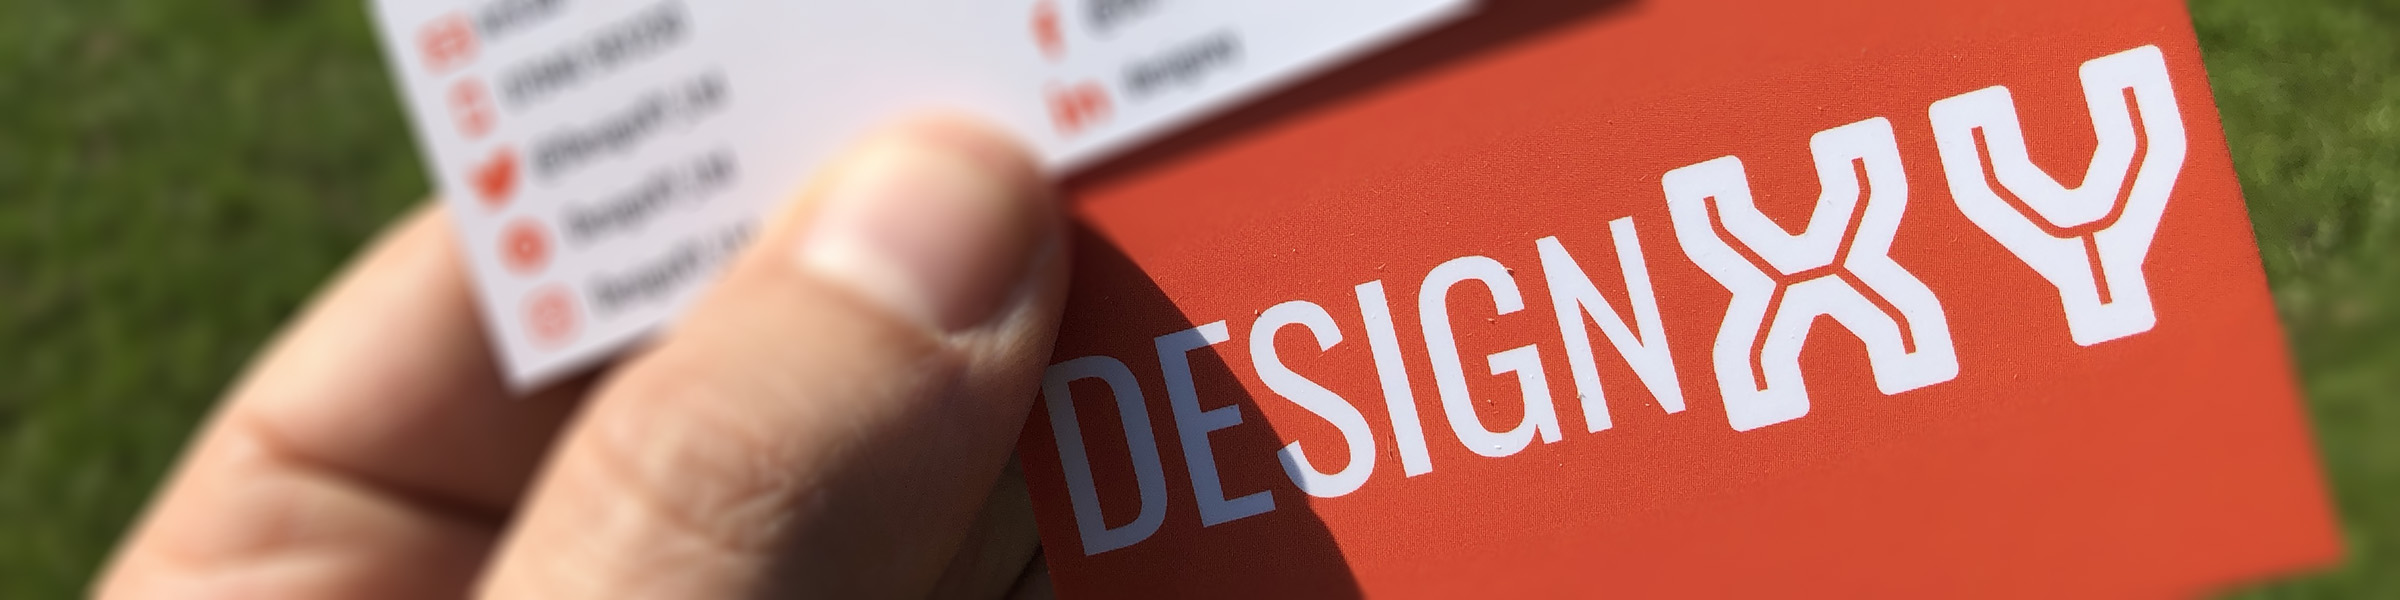 DesignXY business cards